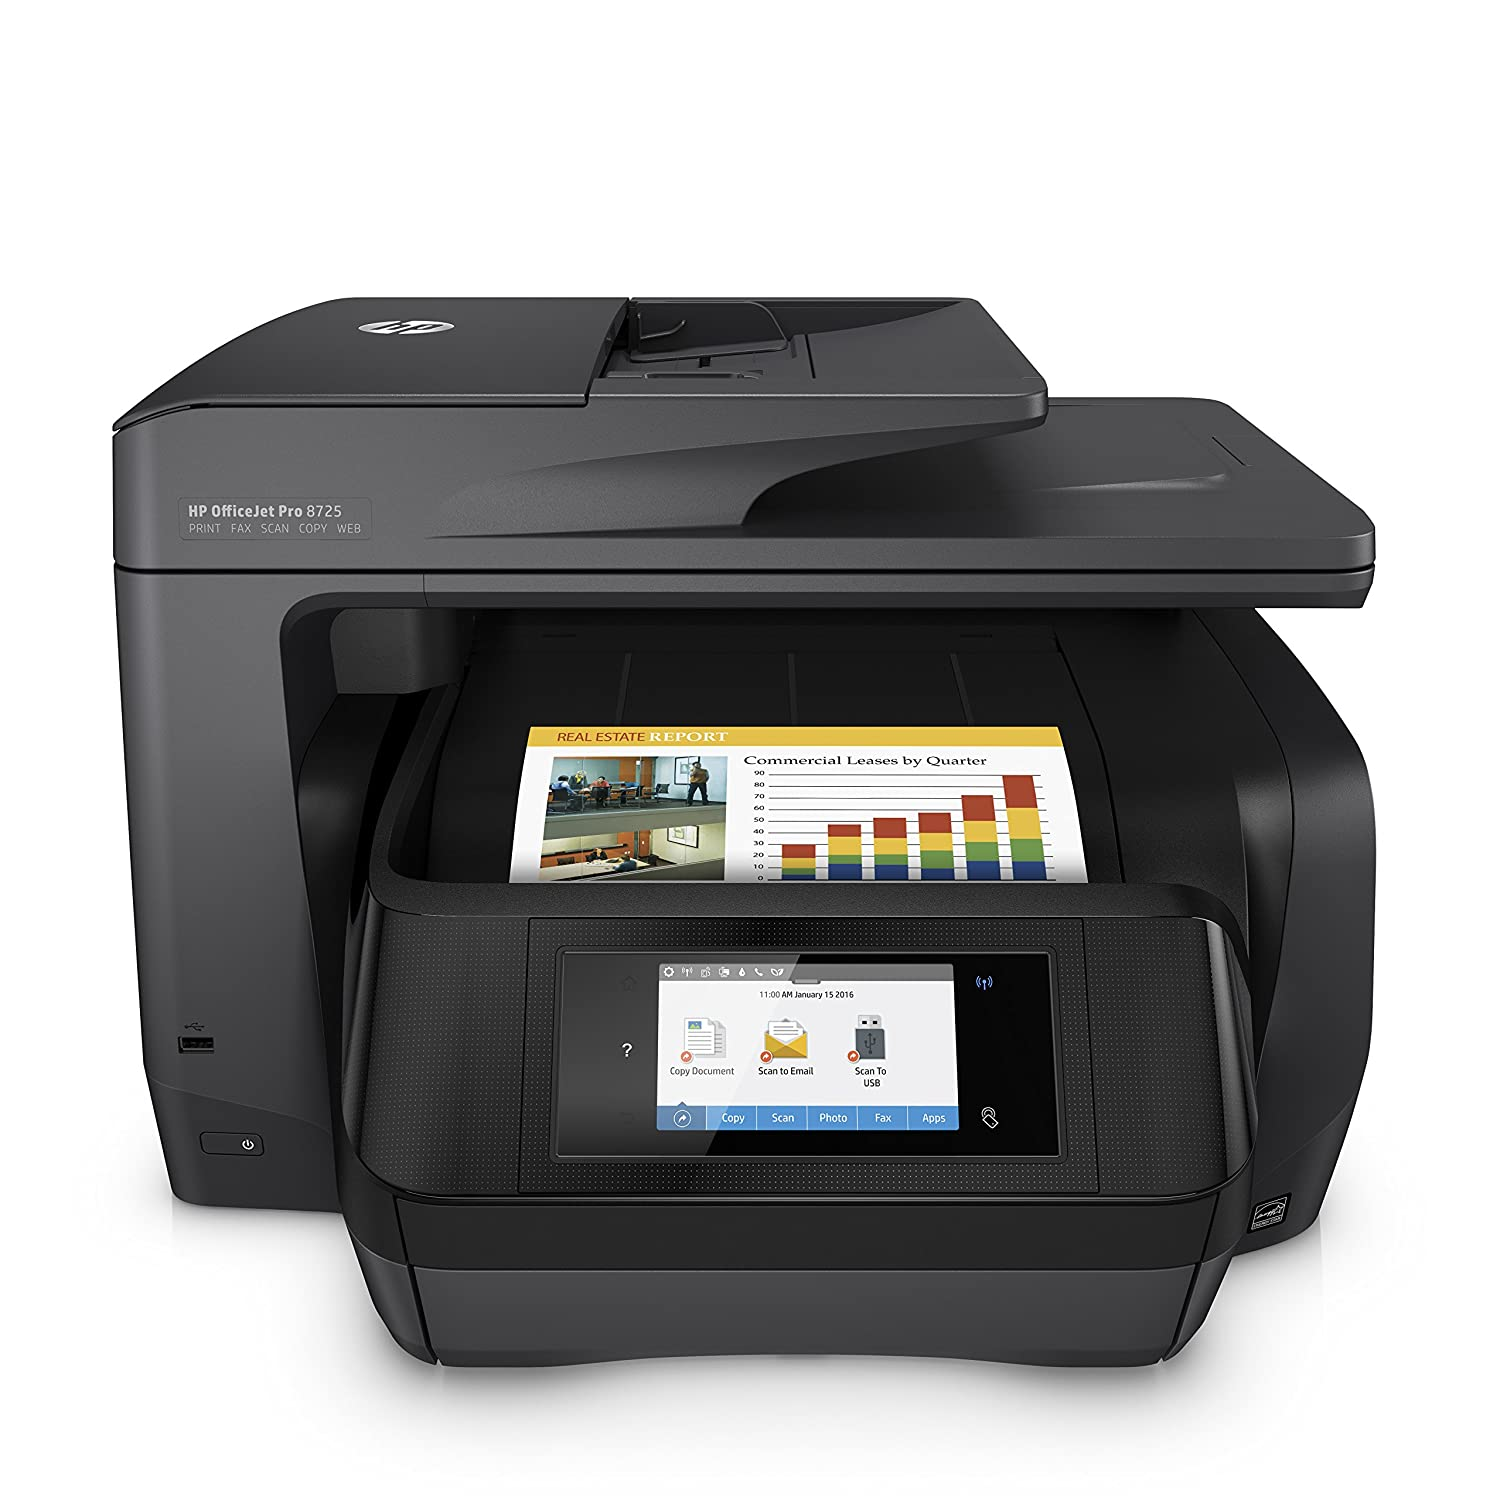 HP OfficeJet Pro 8715 Stampante All-in-One, Tecnologia Inkjet Termica, A4